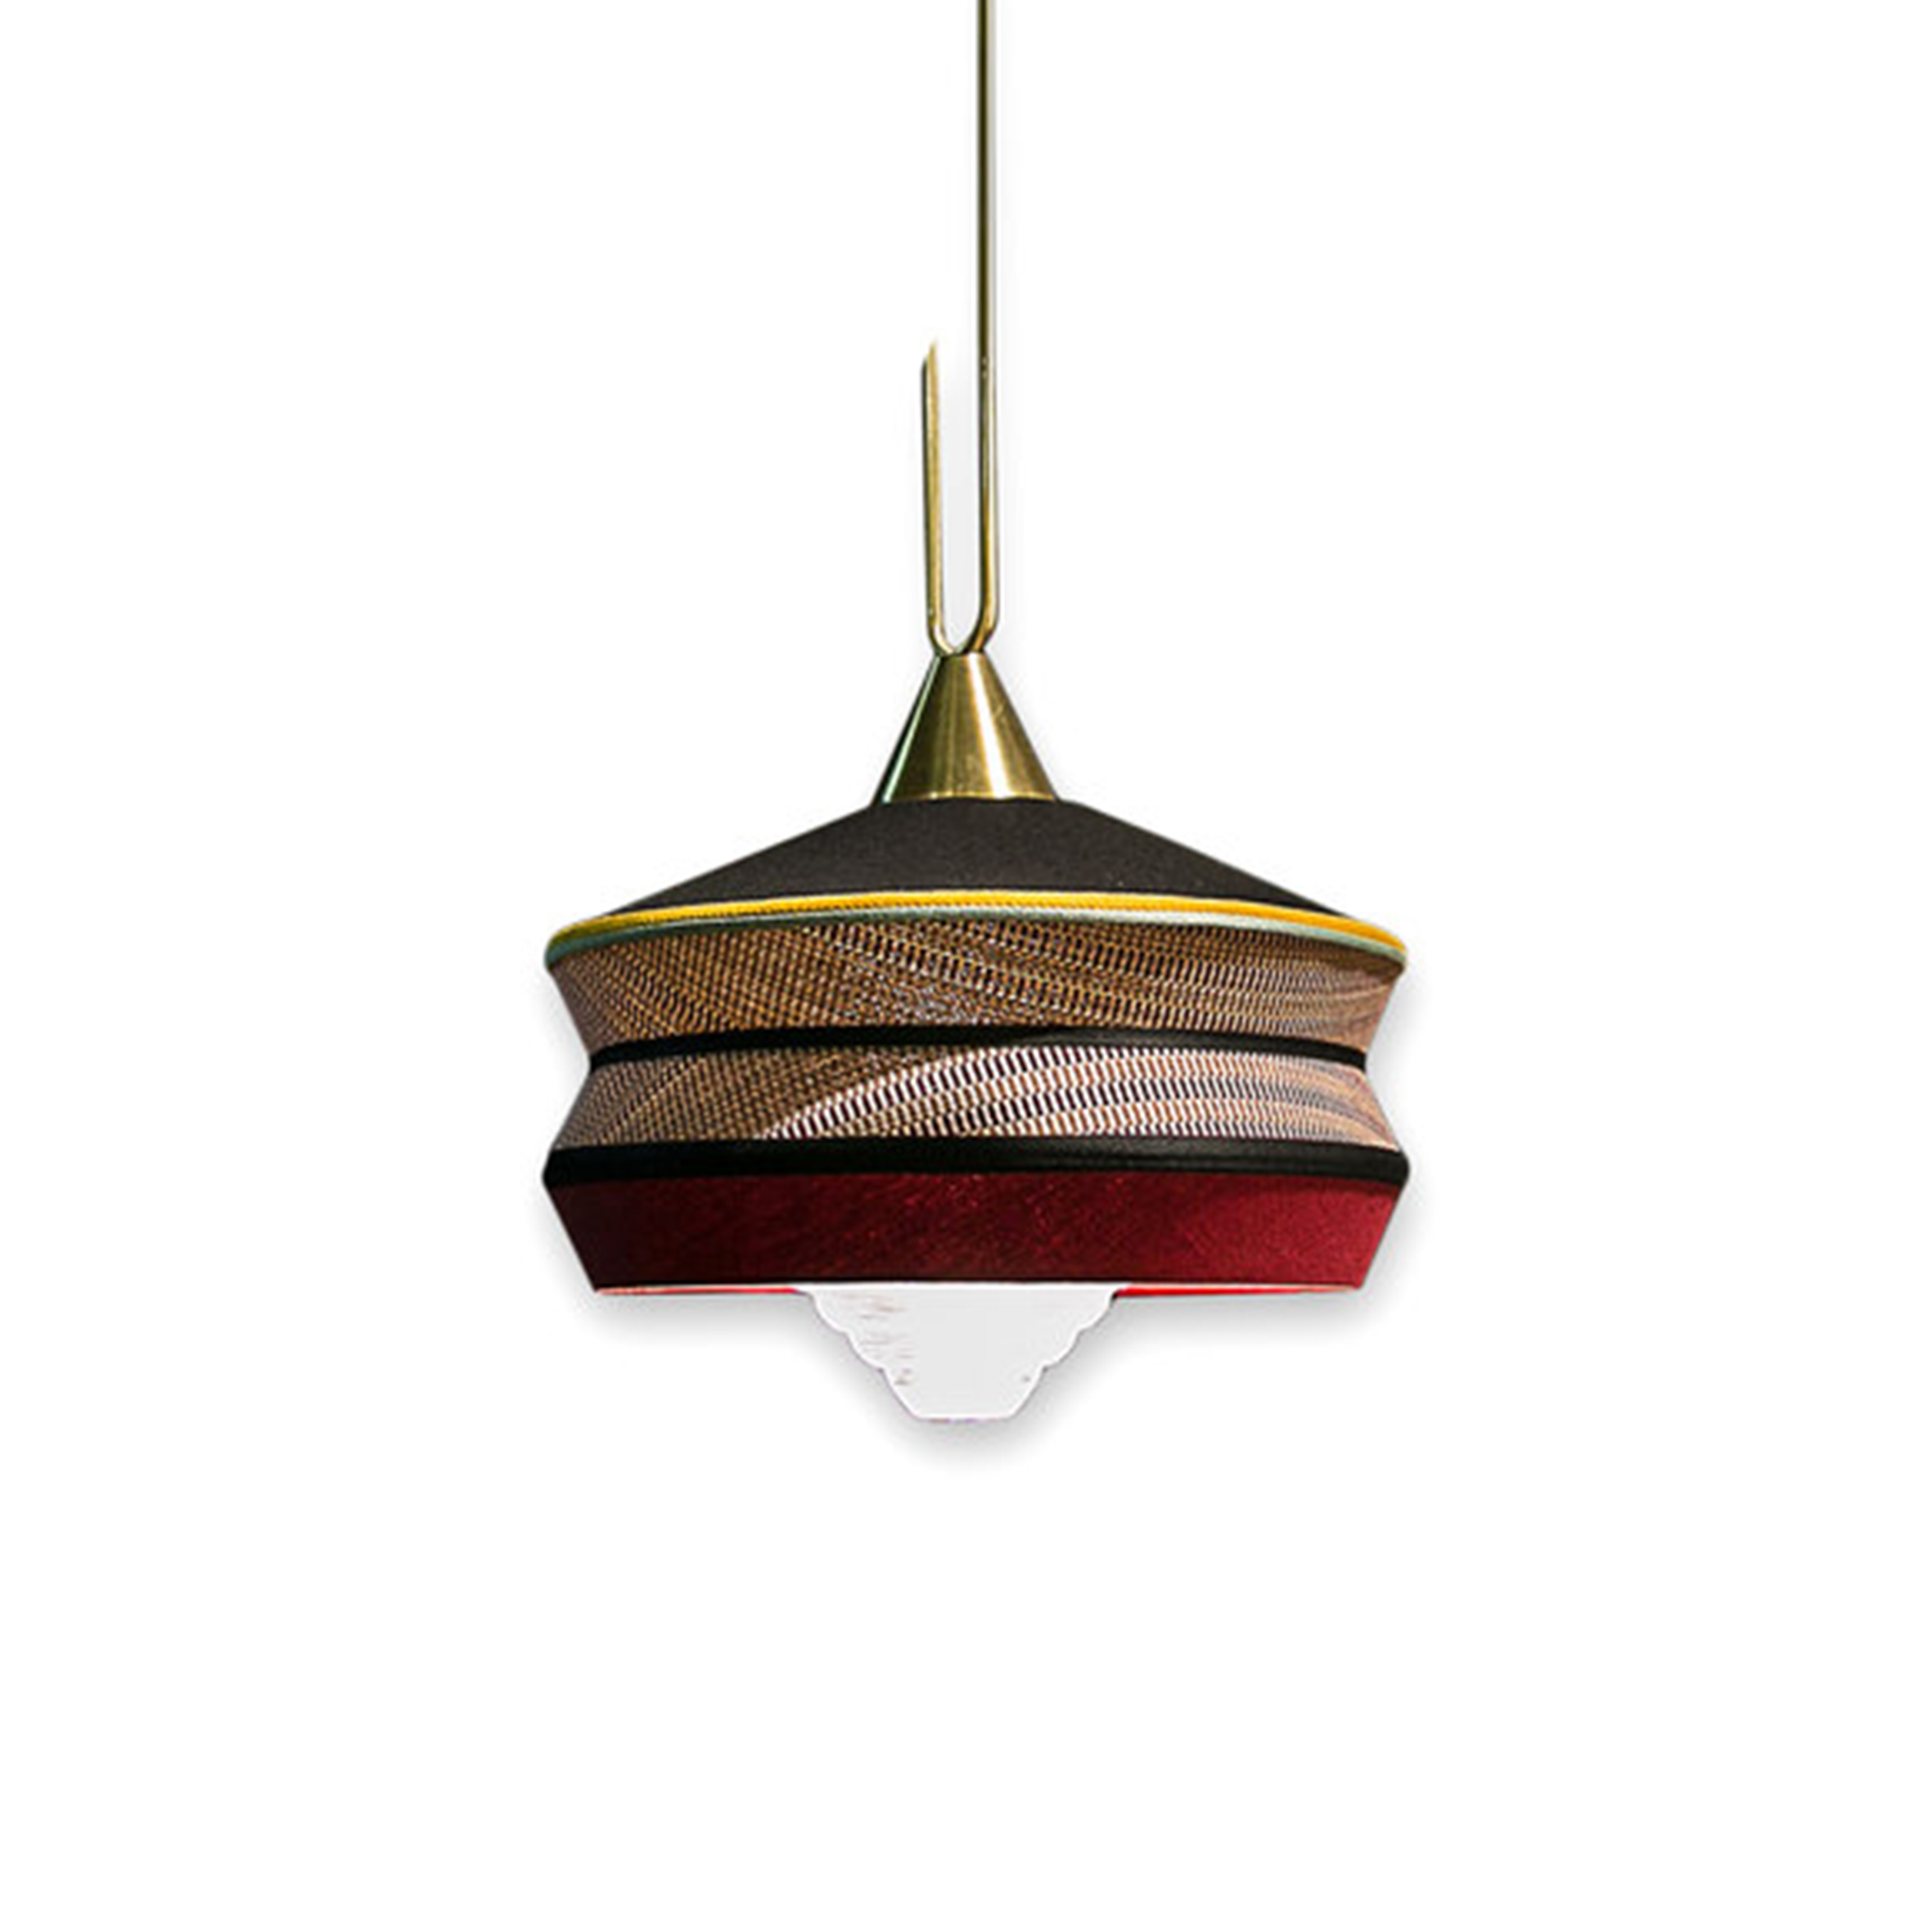 Calypso Antigua by Servomuto, Contardi Lighting